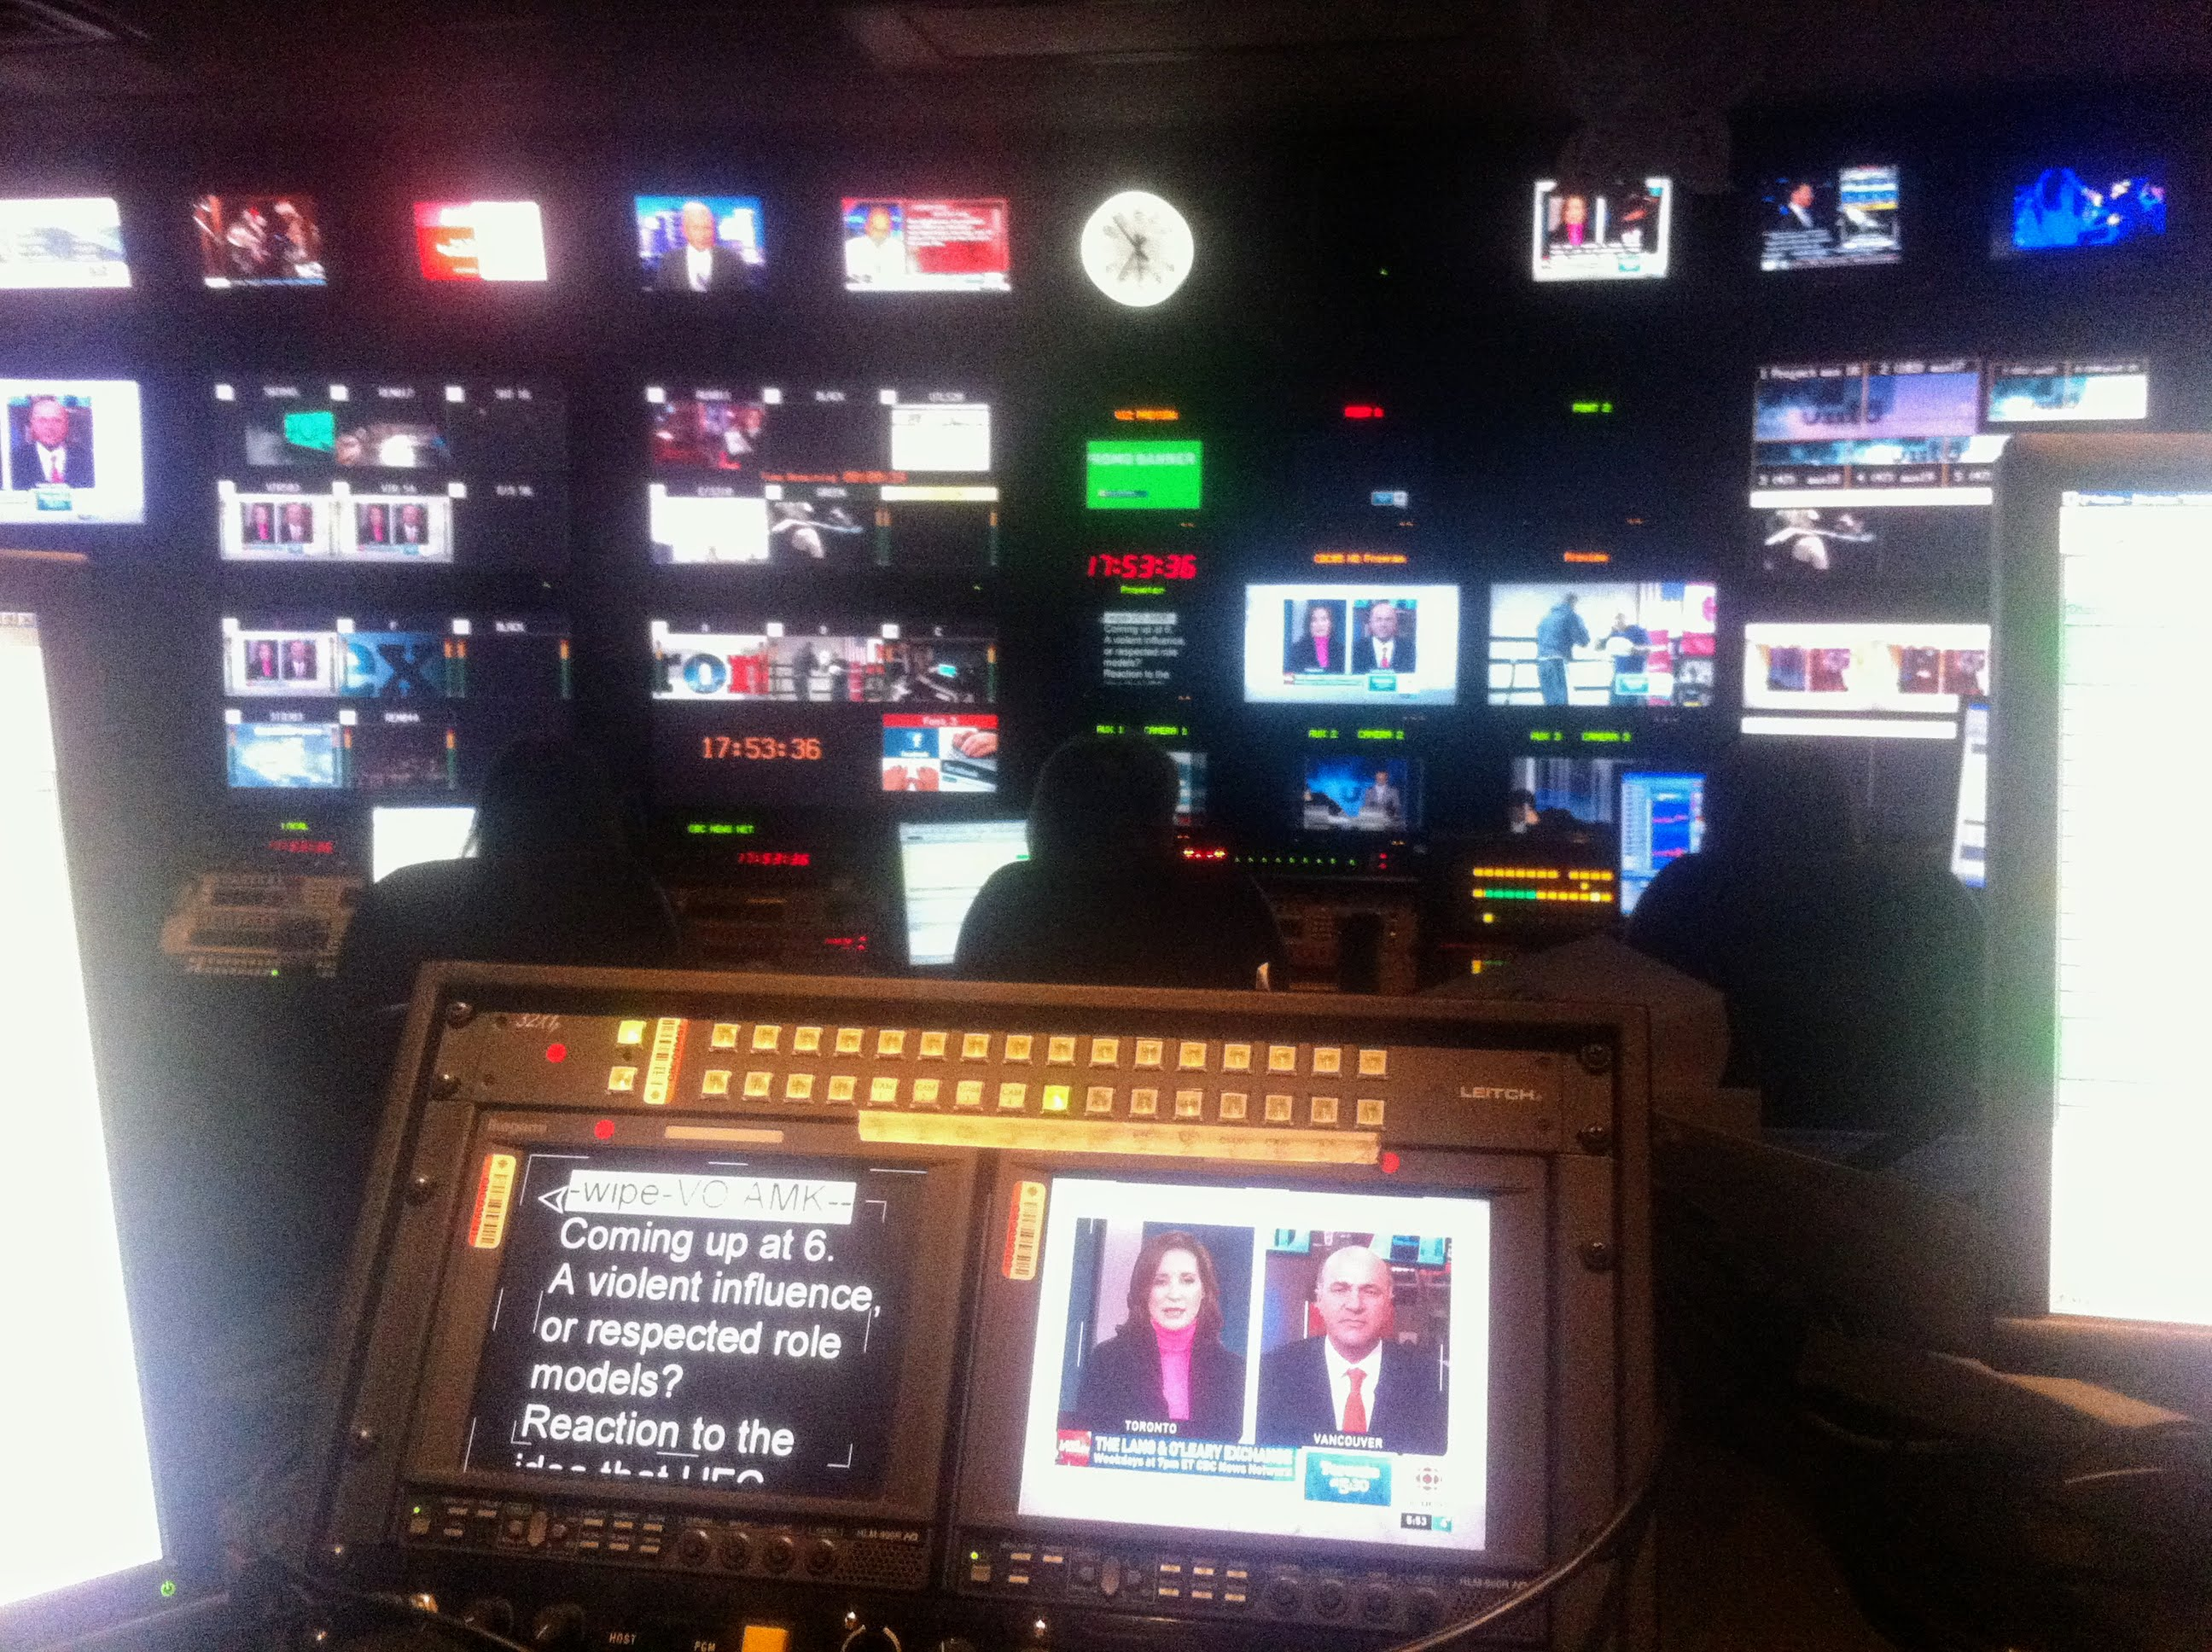 A TV news control room in the Canadian Broadcasting Centre in Toronto pictured on Dec. 5, 2011. (Steve Silva)